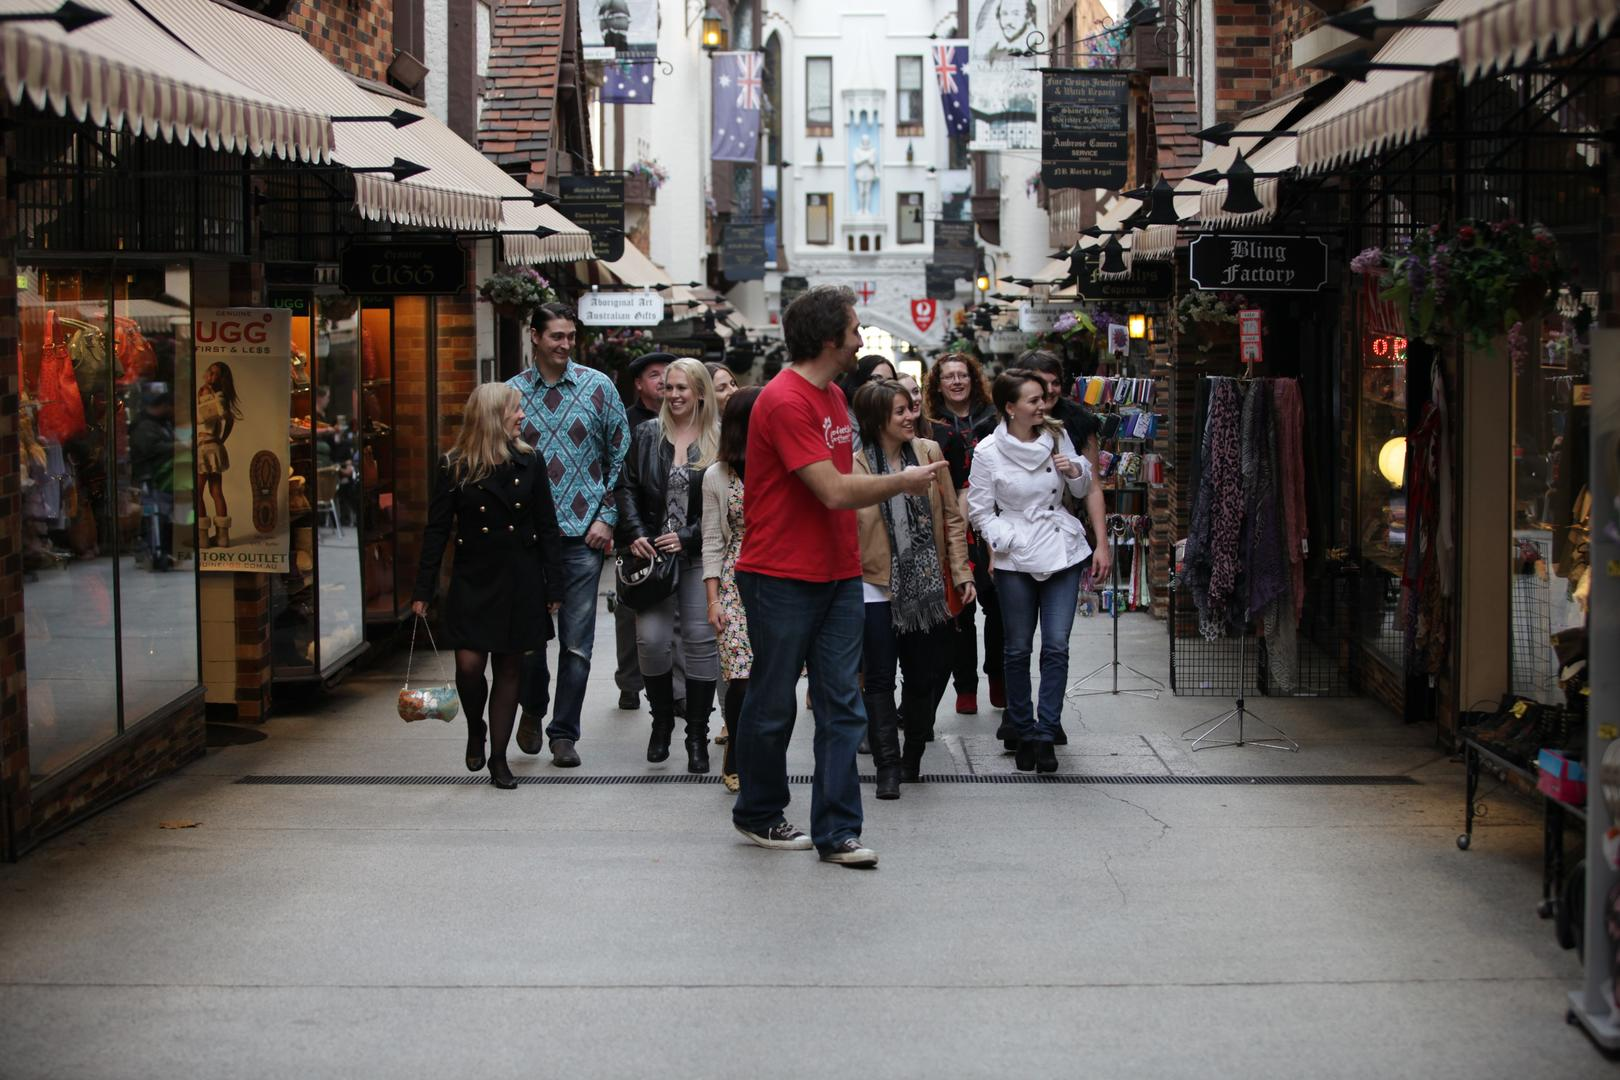 Dine, drink & walk tour Perth CBD